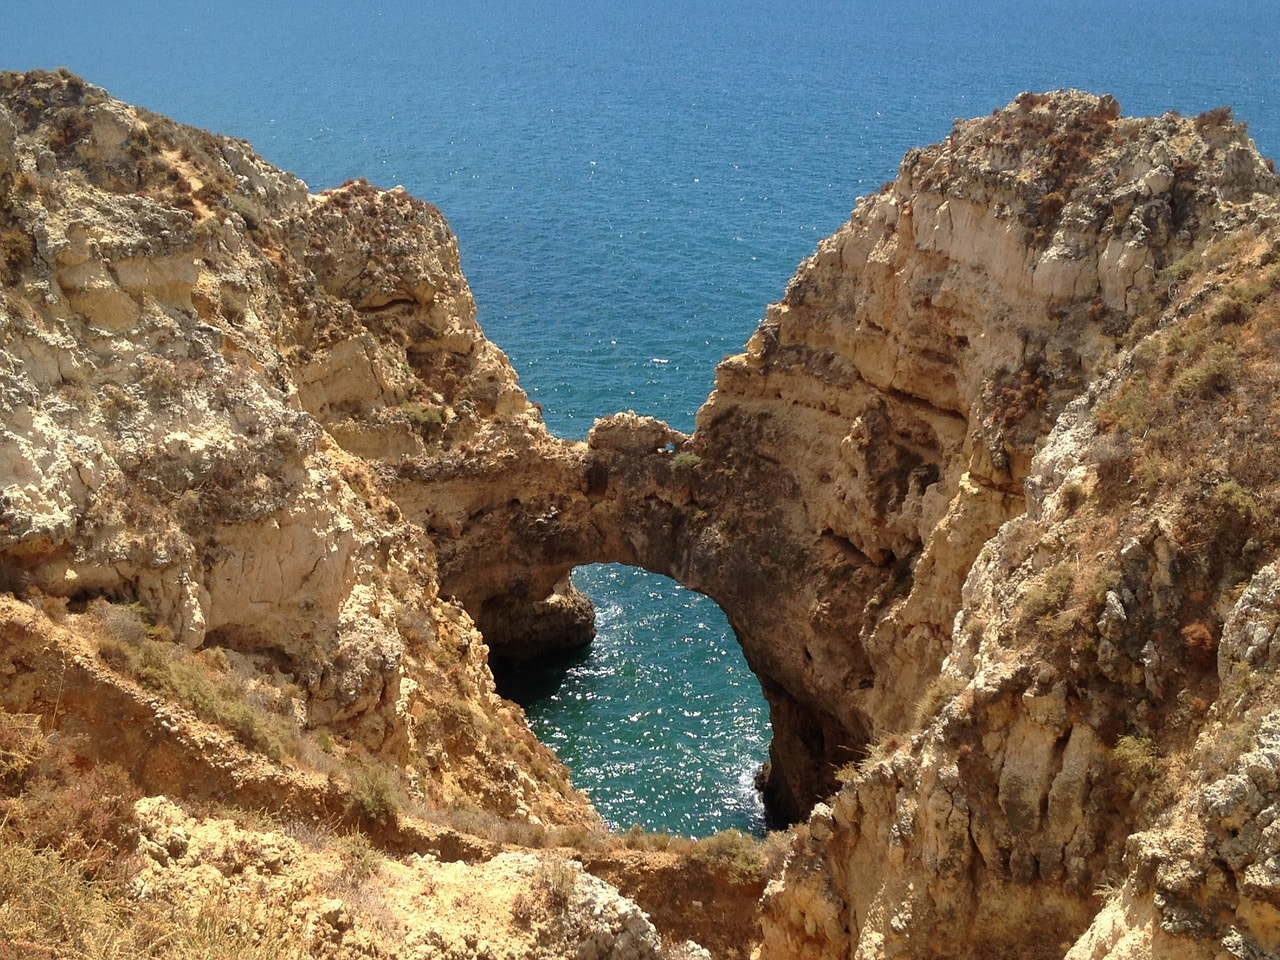 https://pixabay.com/en/algarve-portugal-rocky-coast-nature-1292579/